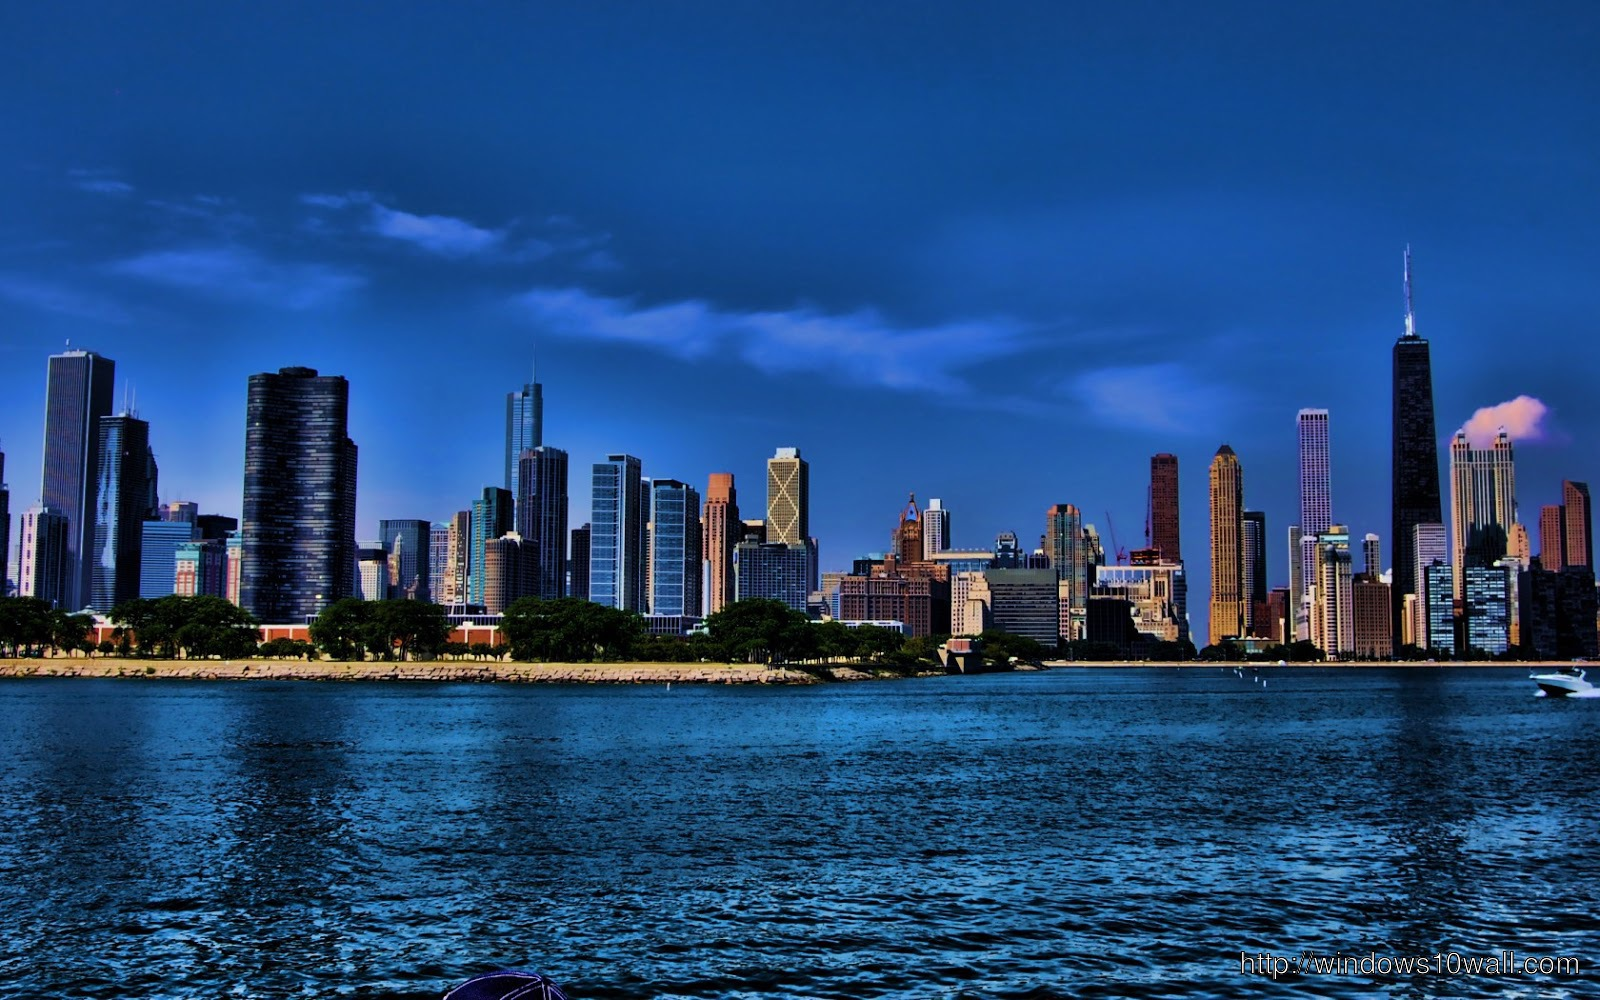 Amazing Wallpaper Night Chicago - Chicago-sea-and-night-building-hd-Wallpaper  Gallery.jpg